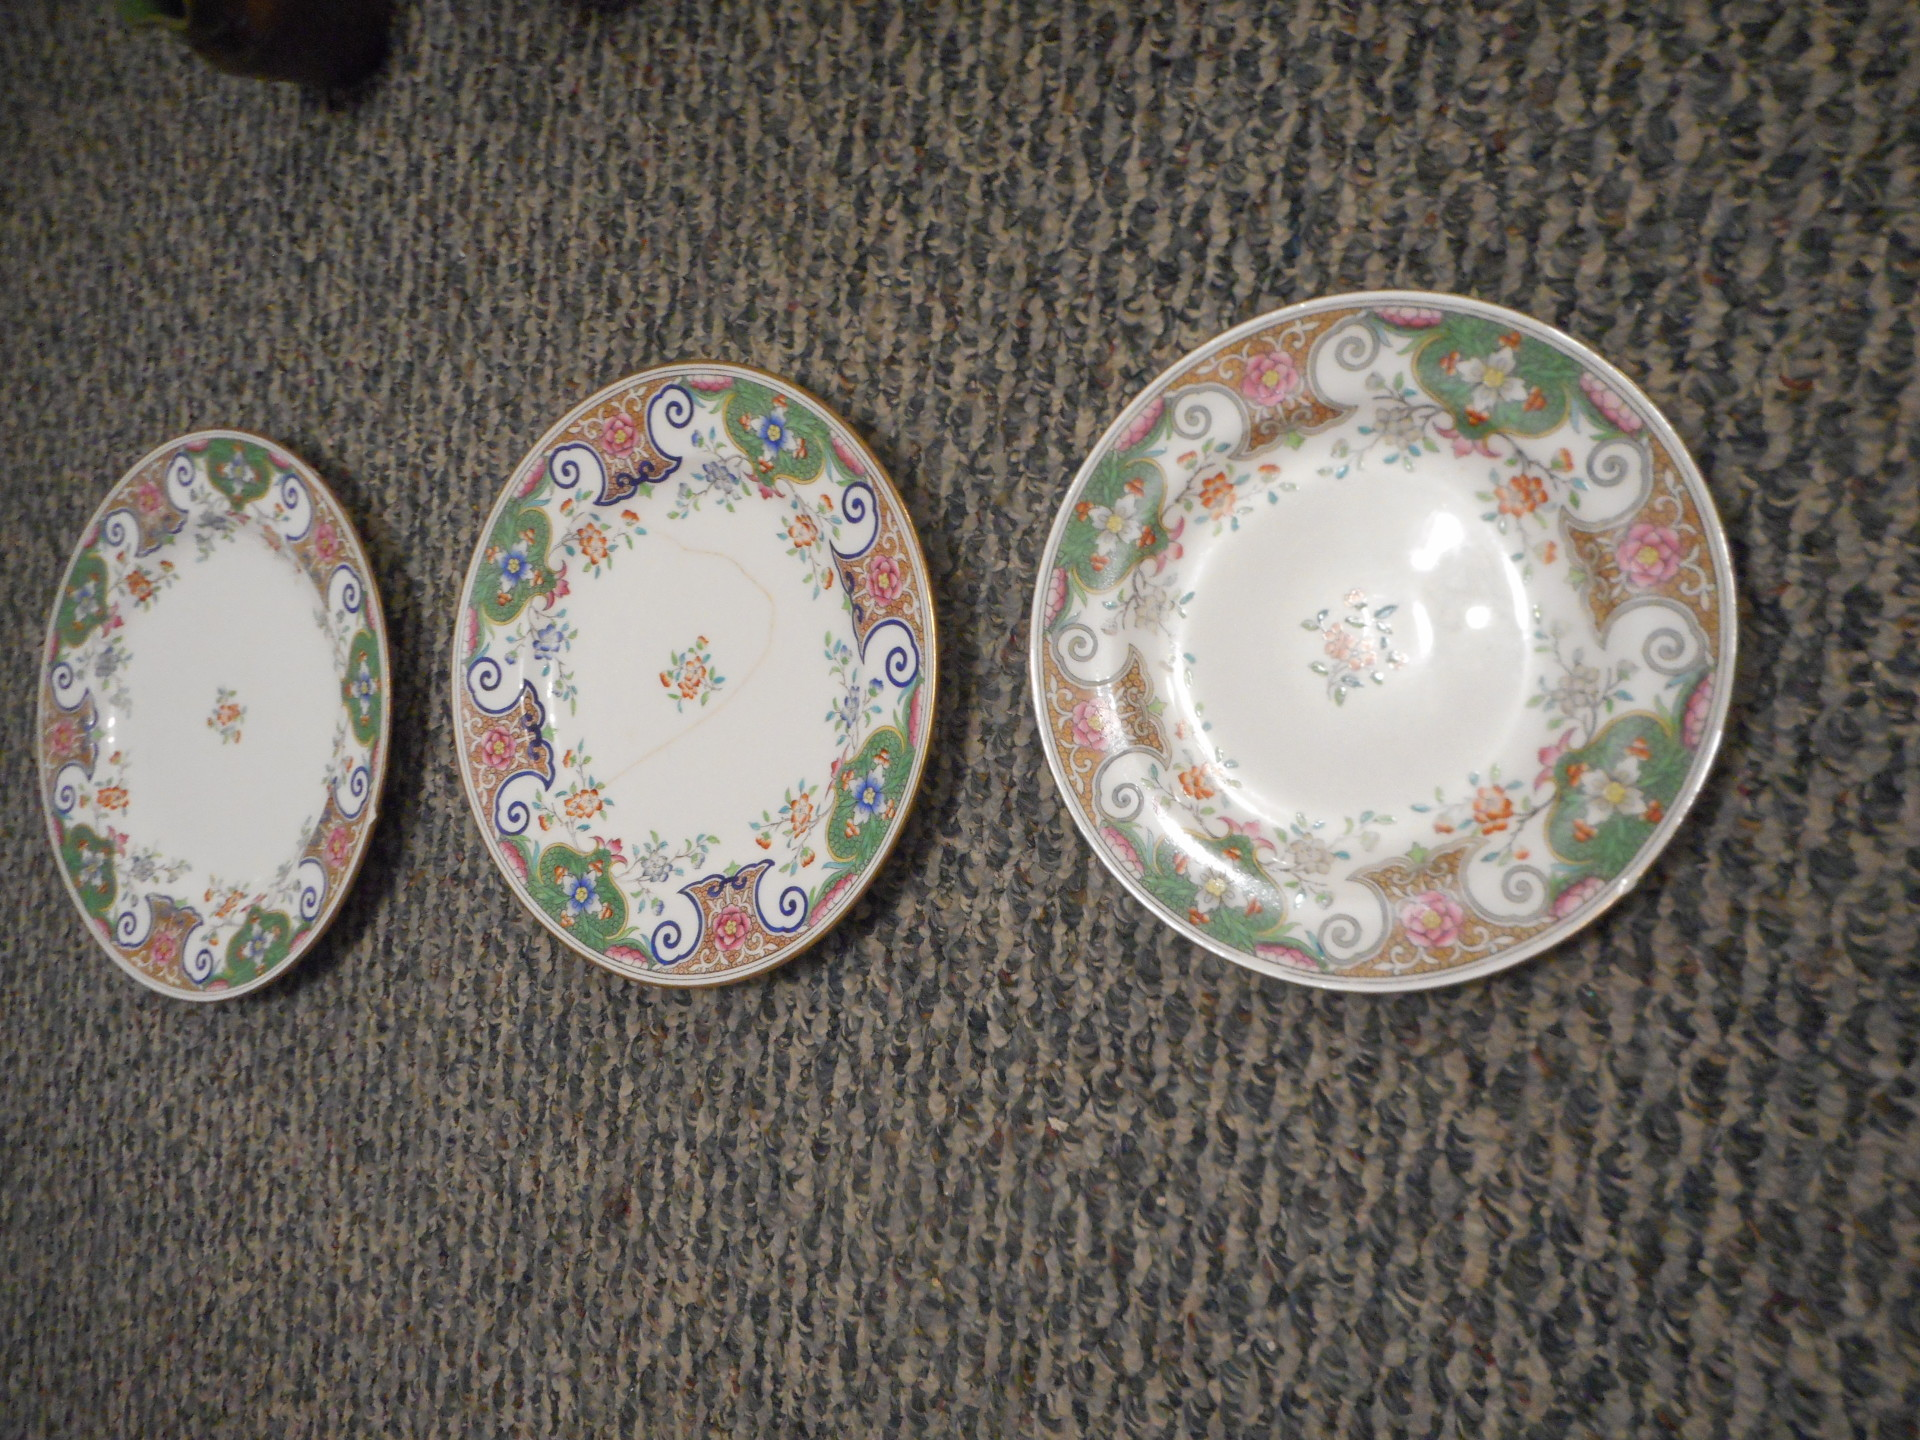 R. Briggs & Co. Boston Made in England - Three Plates